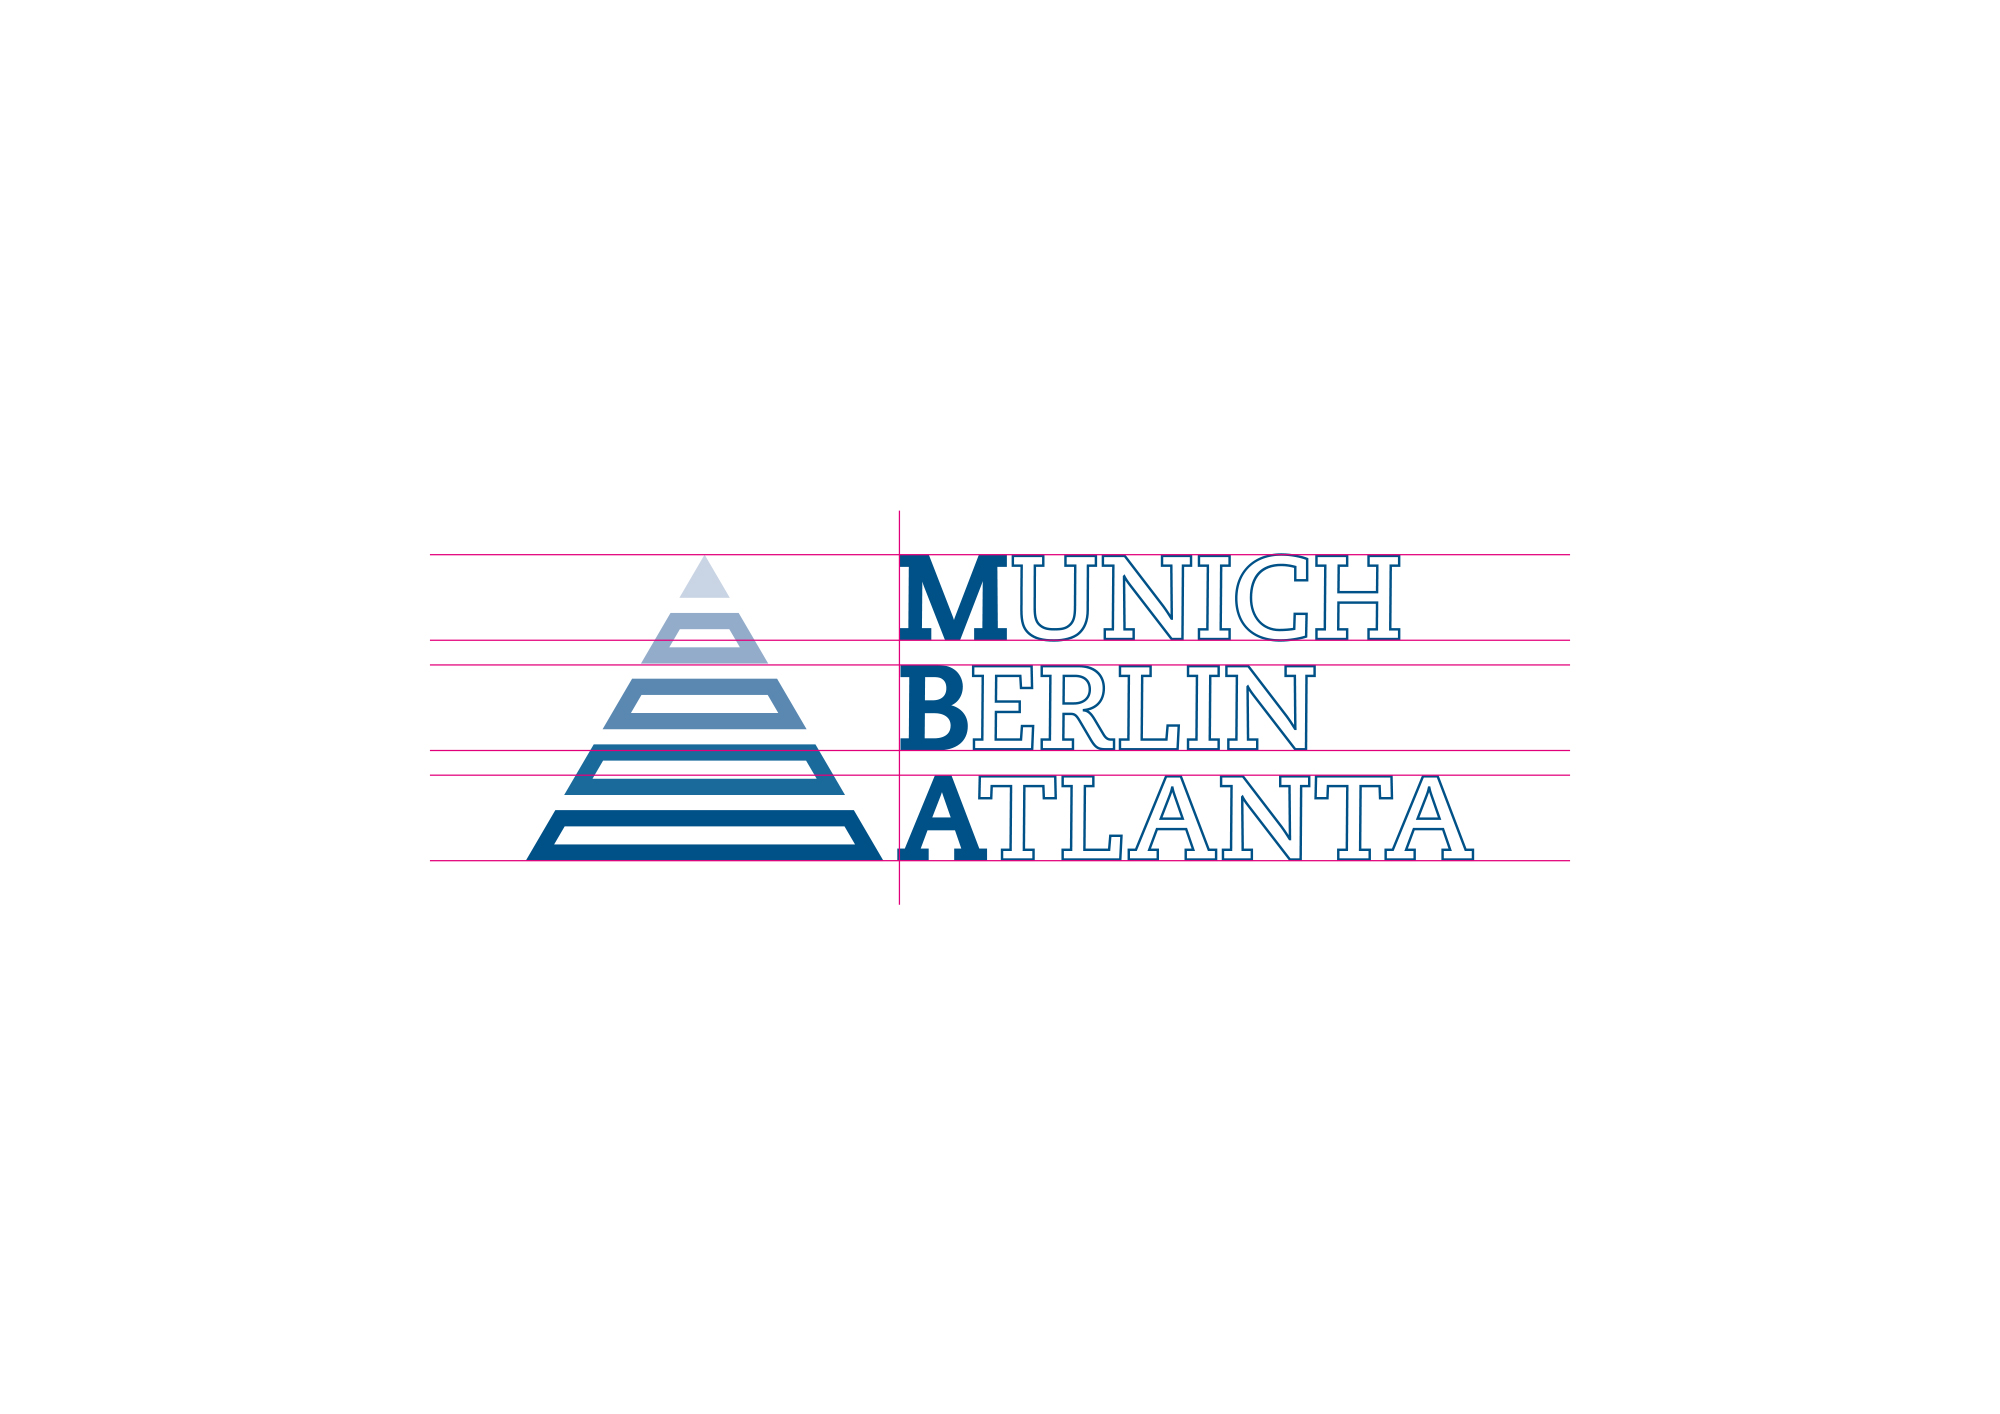 MBA-Management-Logo_Details.jpg?fit=2000%2C1414